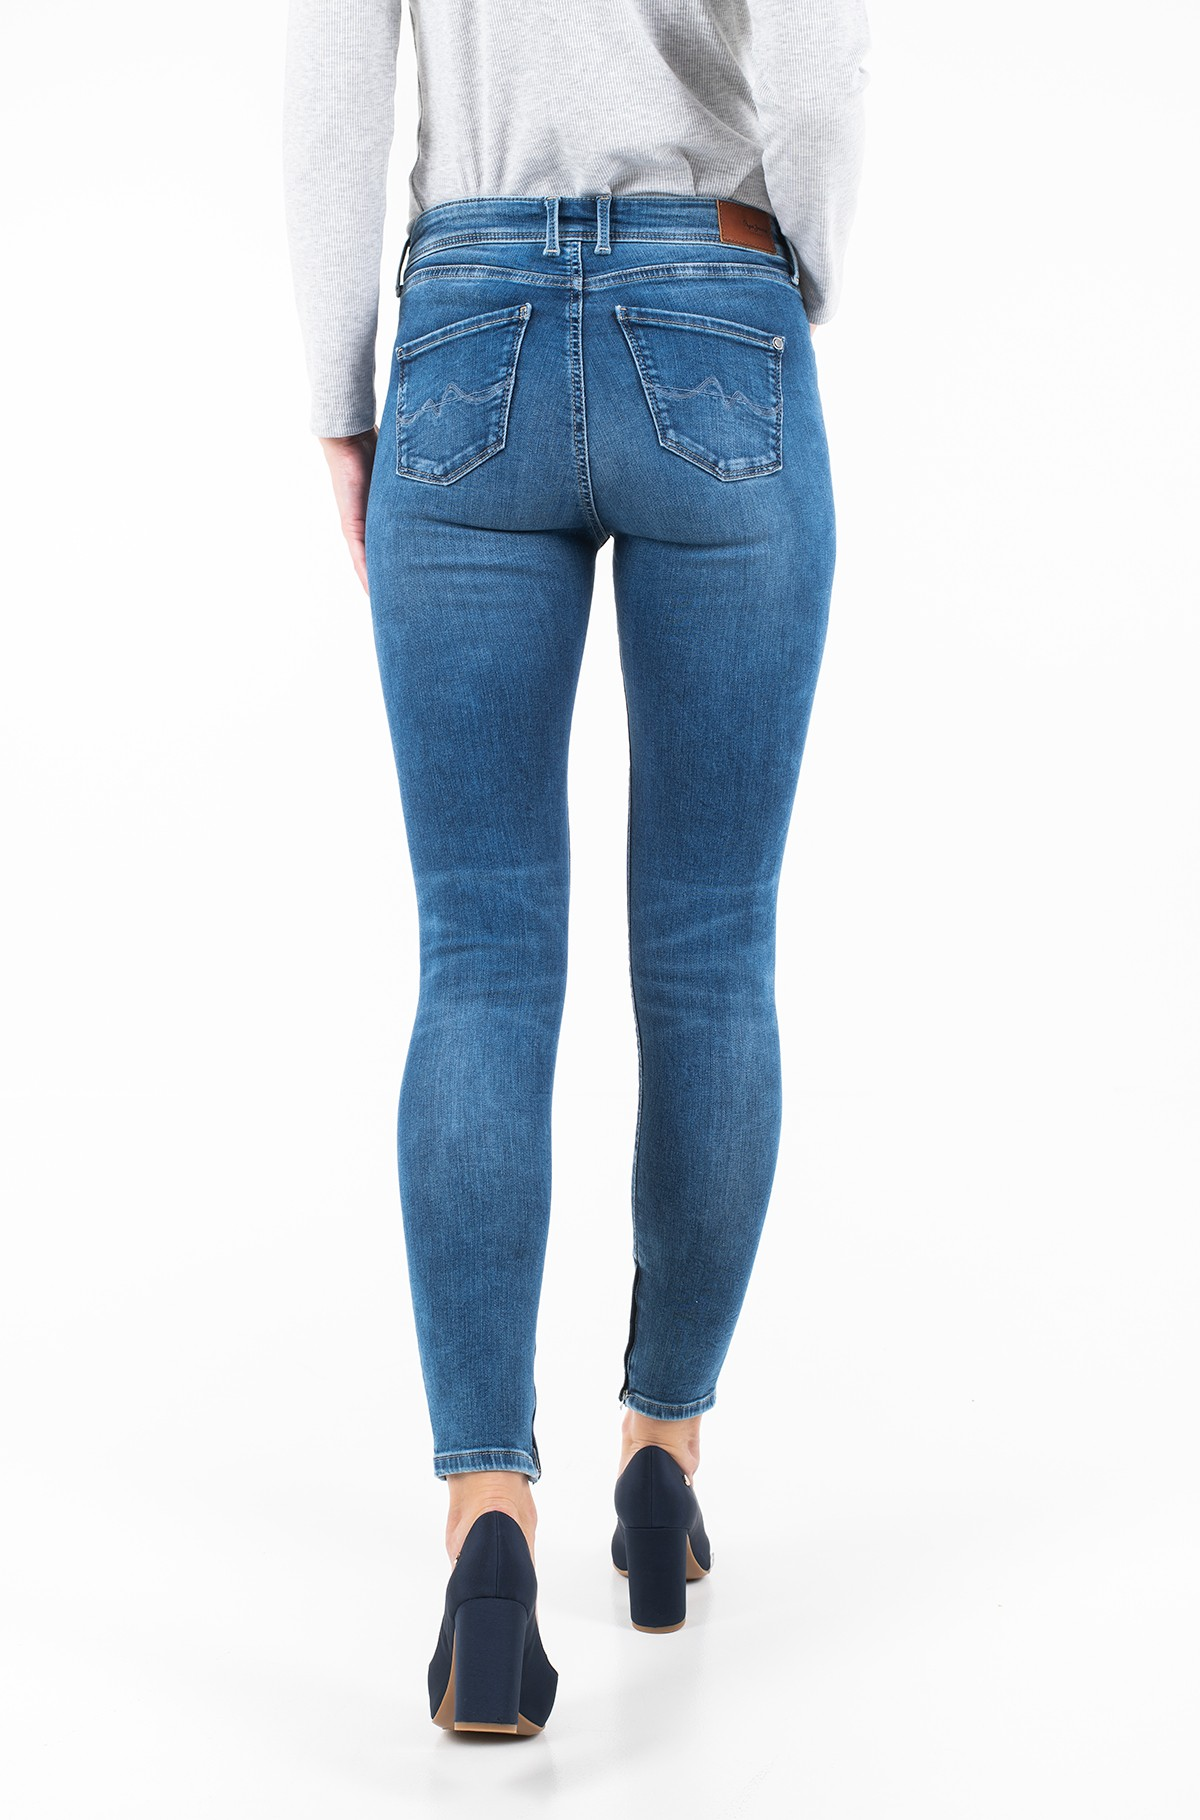 Jeans CHER HIGH/PL203384GS1-full-2